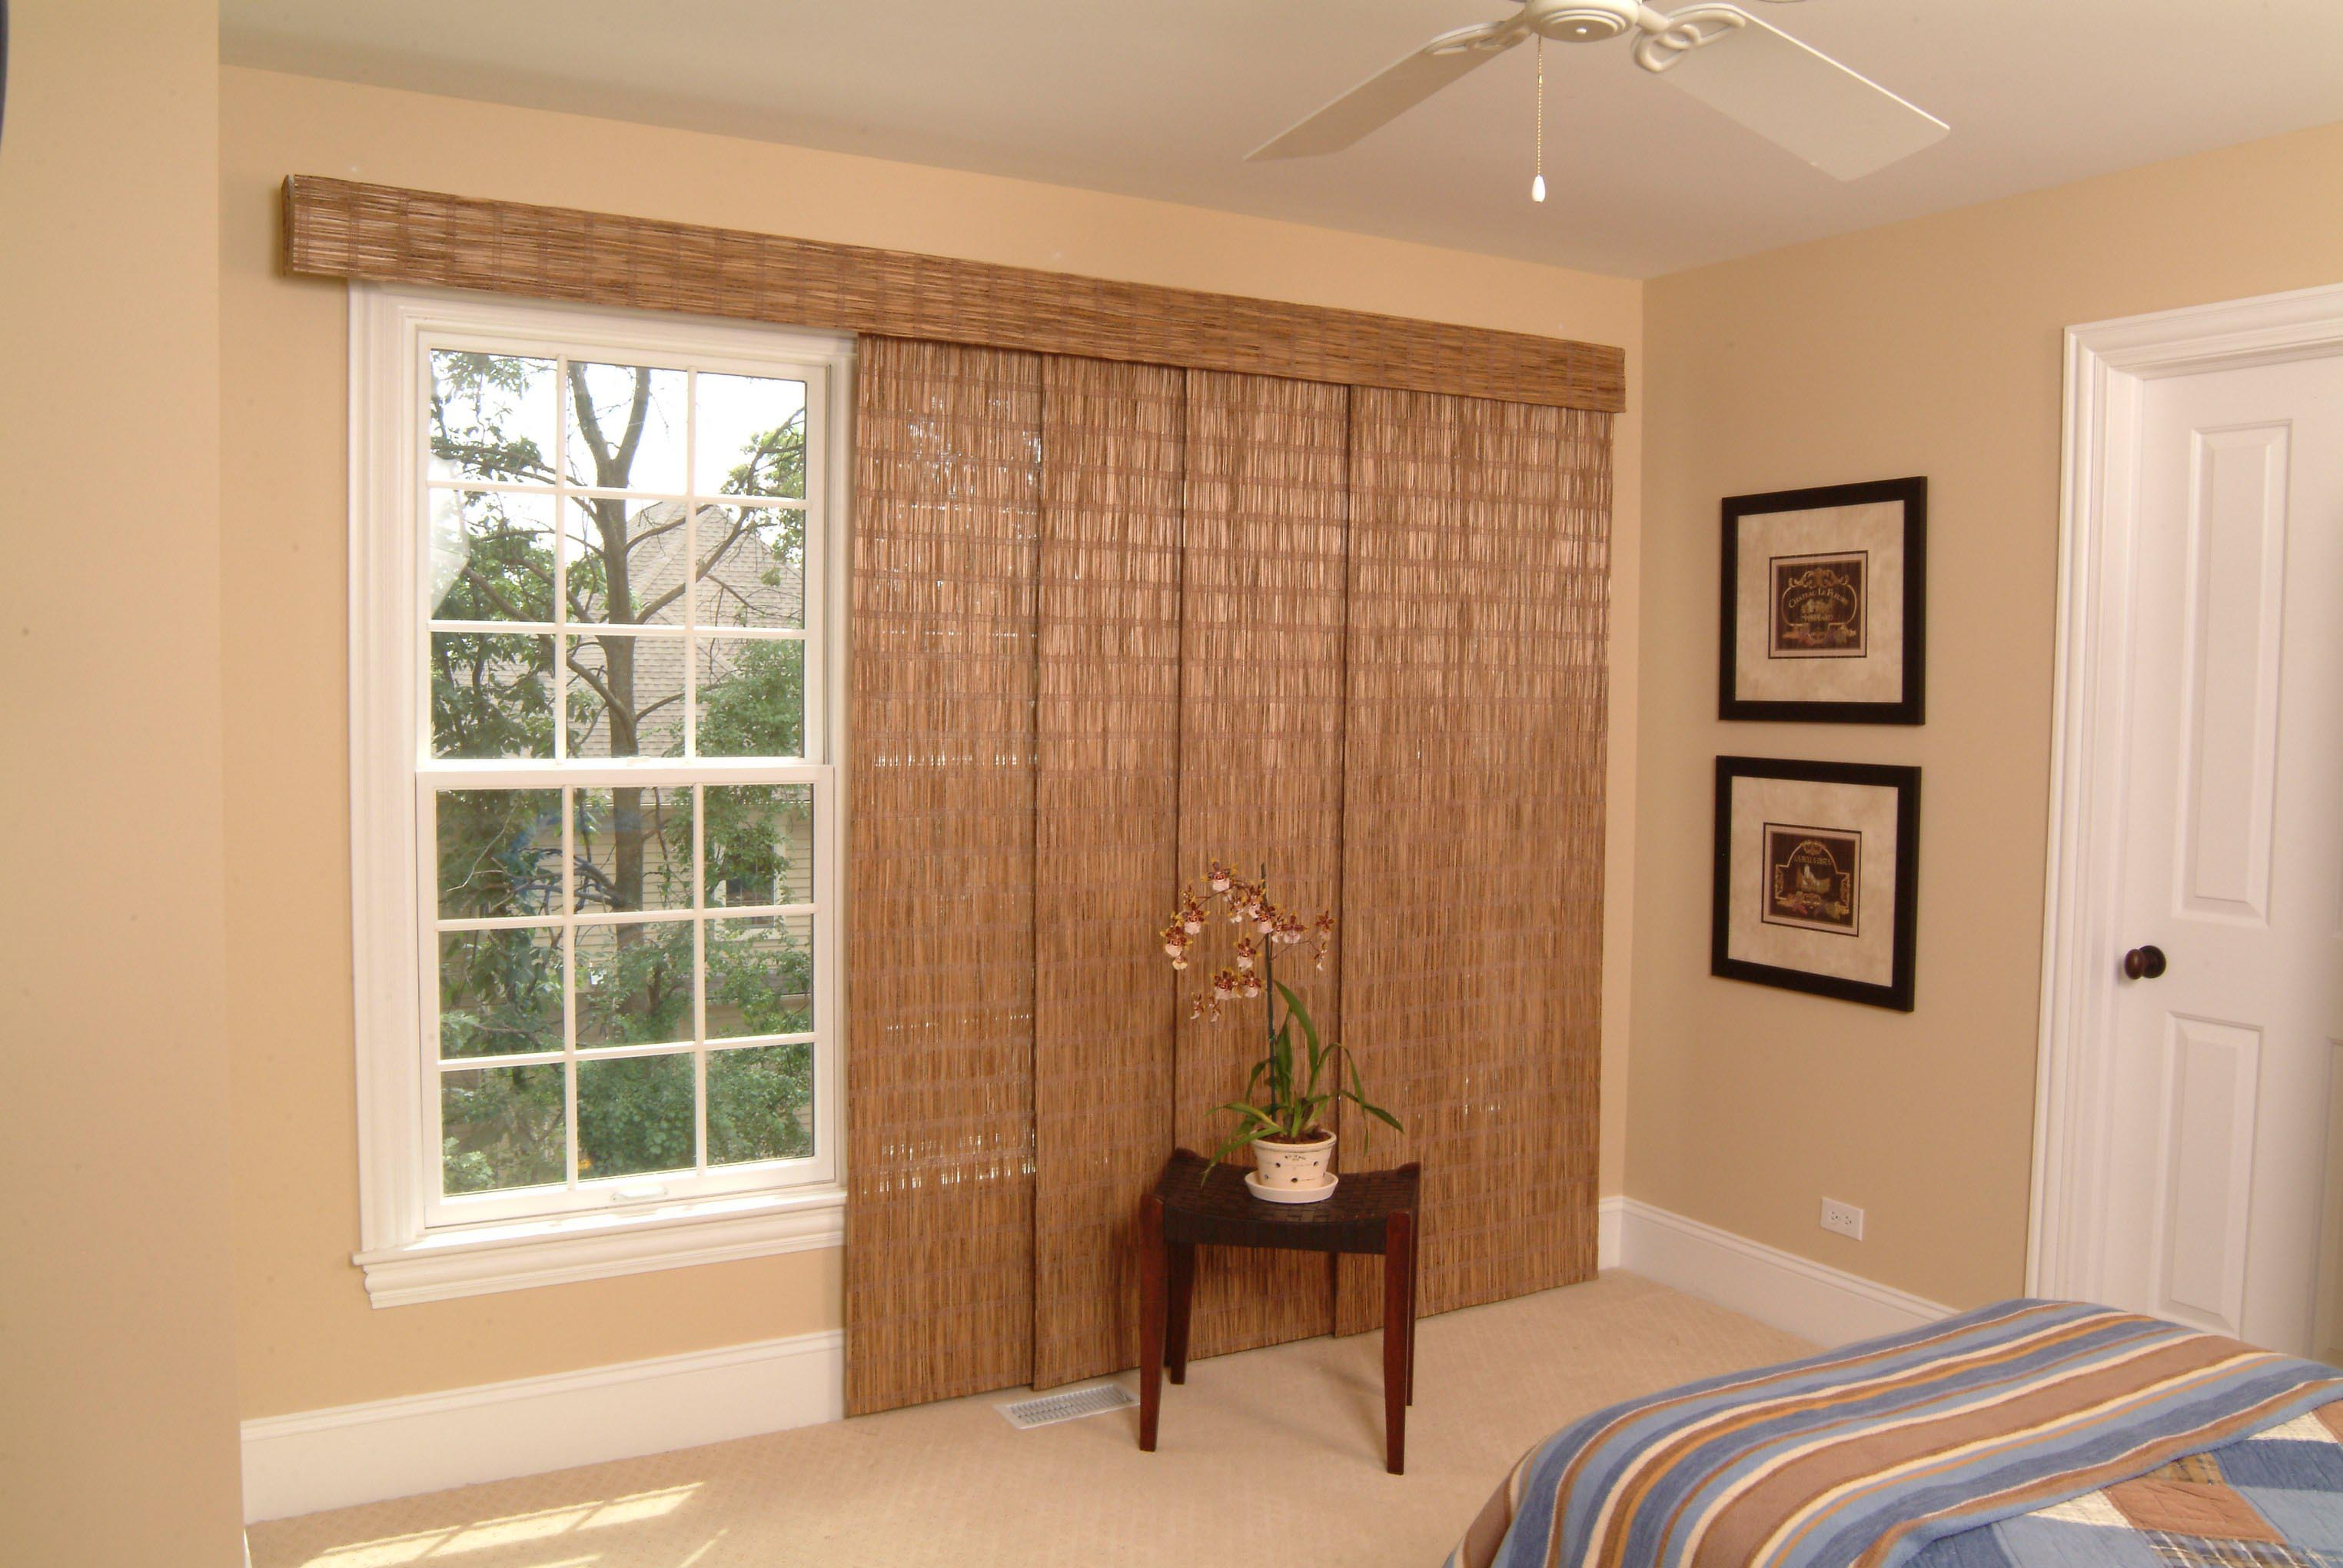 Bedroom Screens Room Dividers